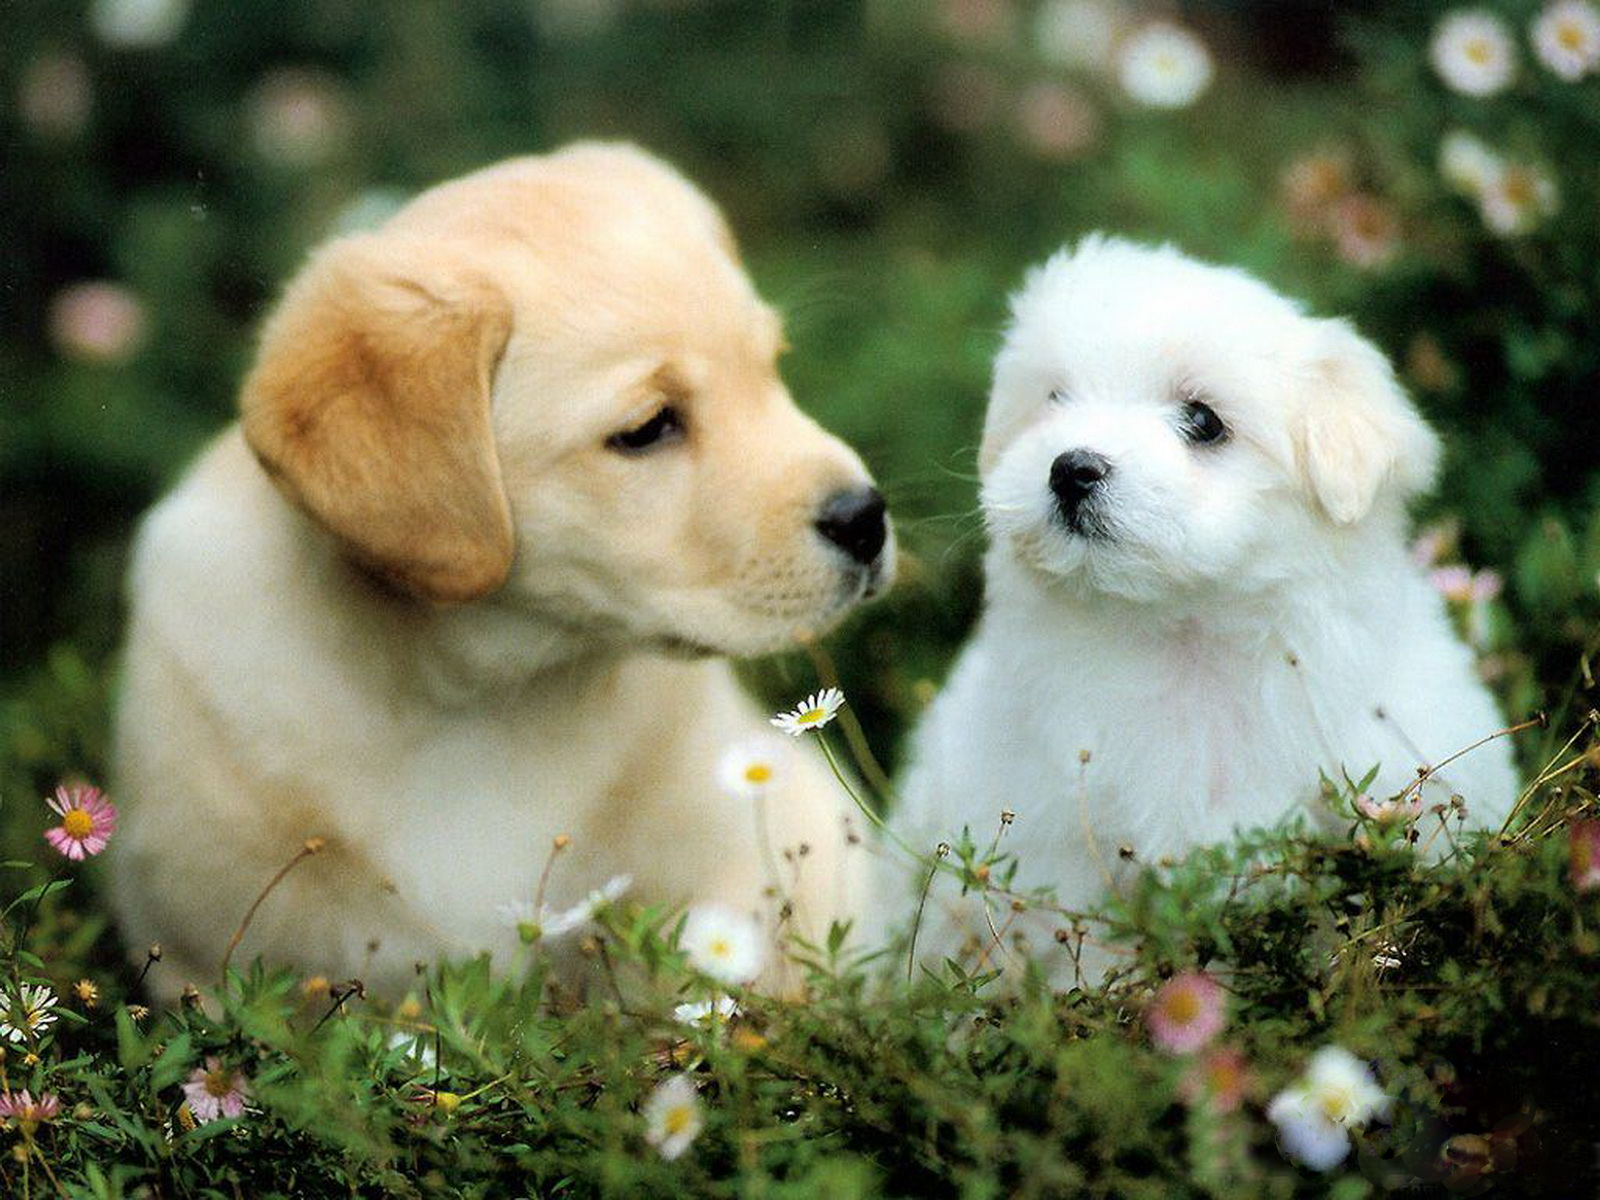 WallpaperfreekS HD Cute Dogs Wallpapers 1600X1200 1600x1200